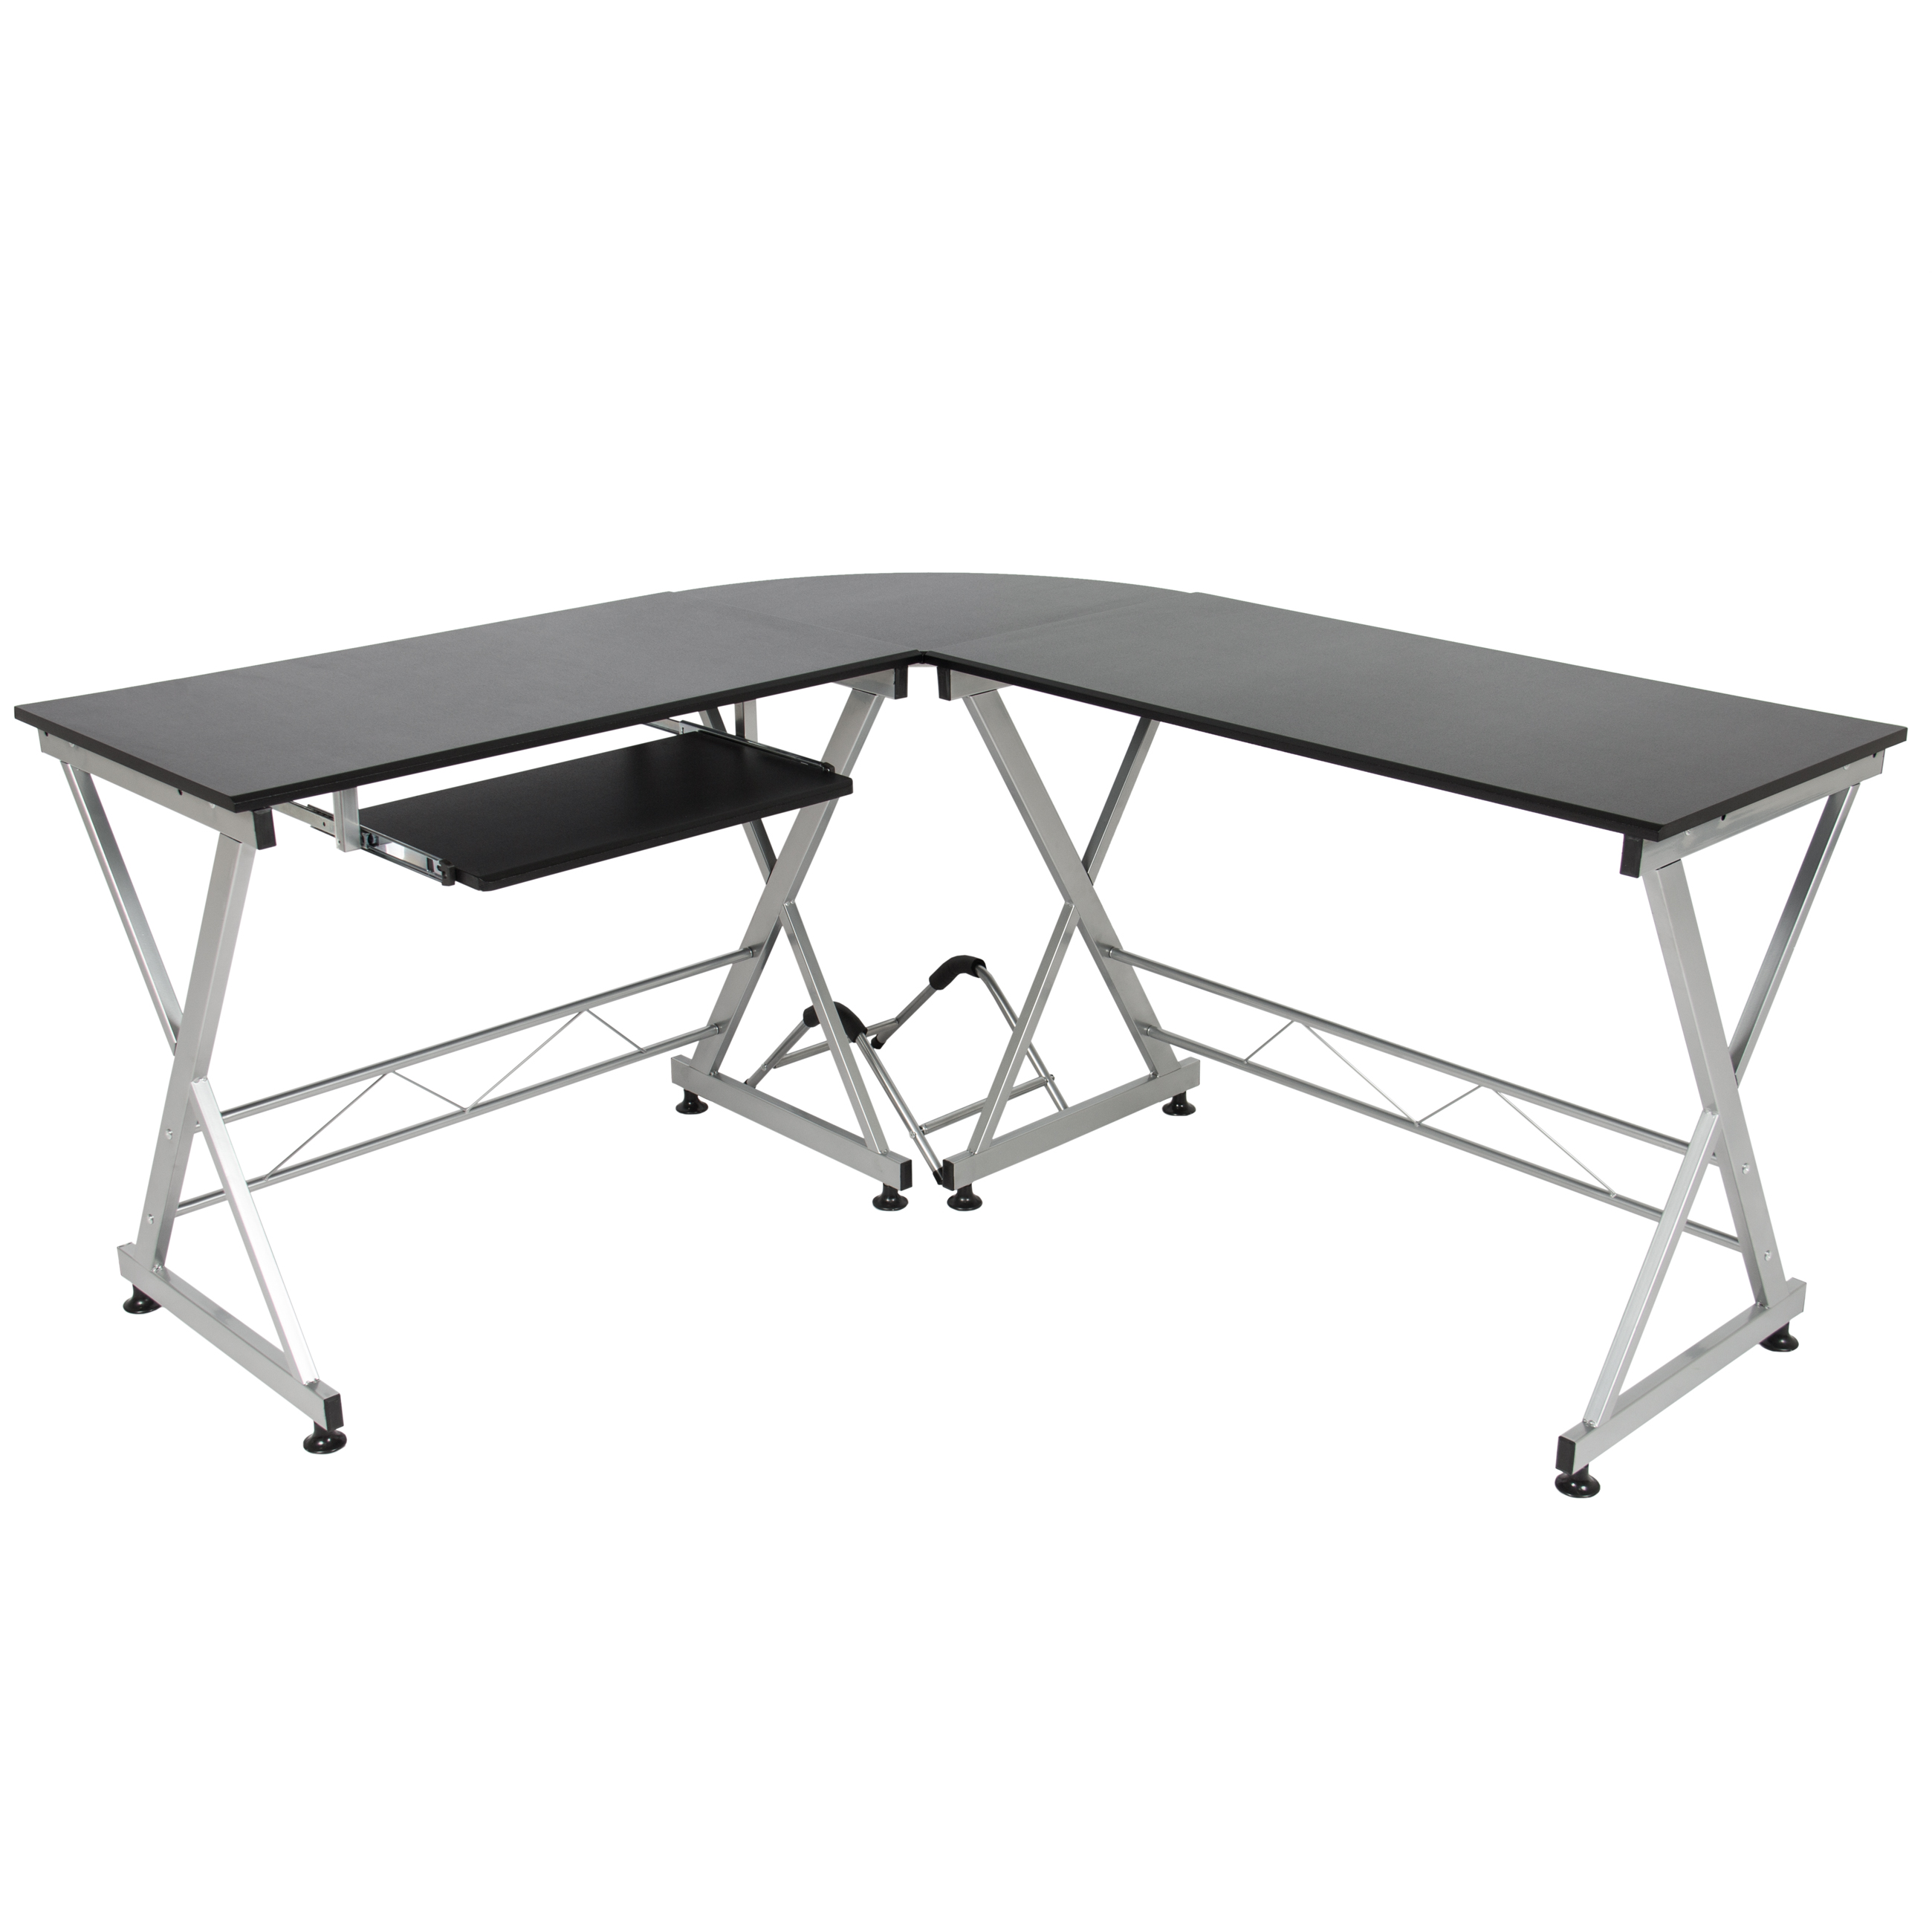 wood home office desks.  Office Best Choice Products Wood LShape Corner Computer Desk PC Laptop Table  Workstation Home Office Black  Walmartcom Inside Desks O